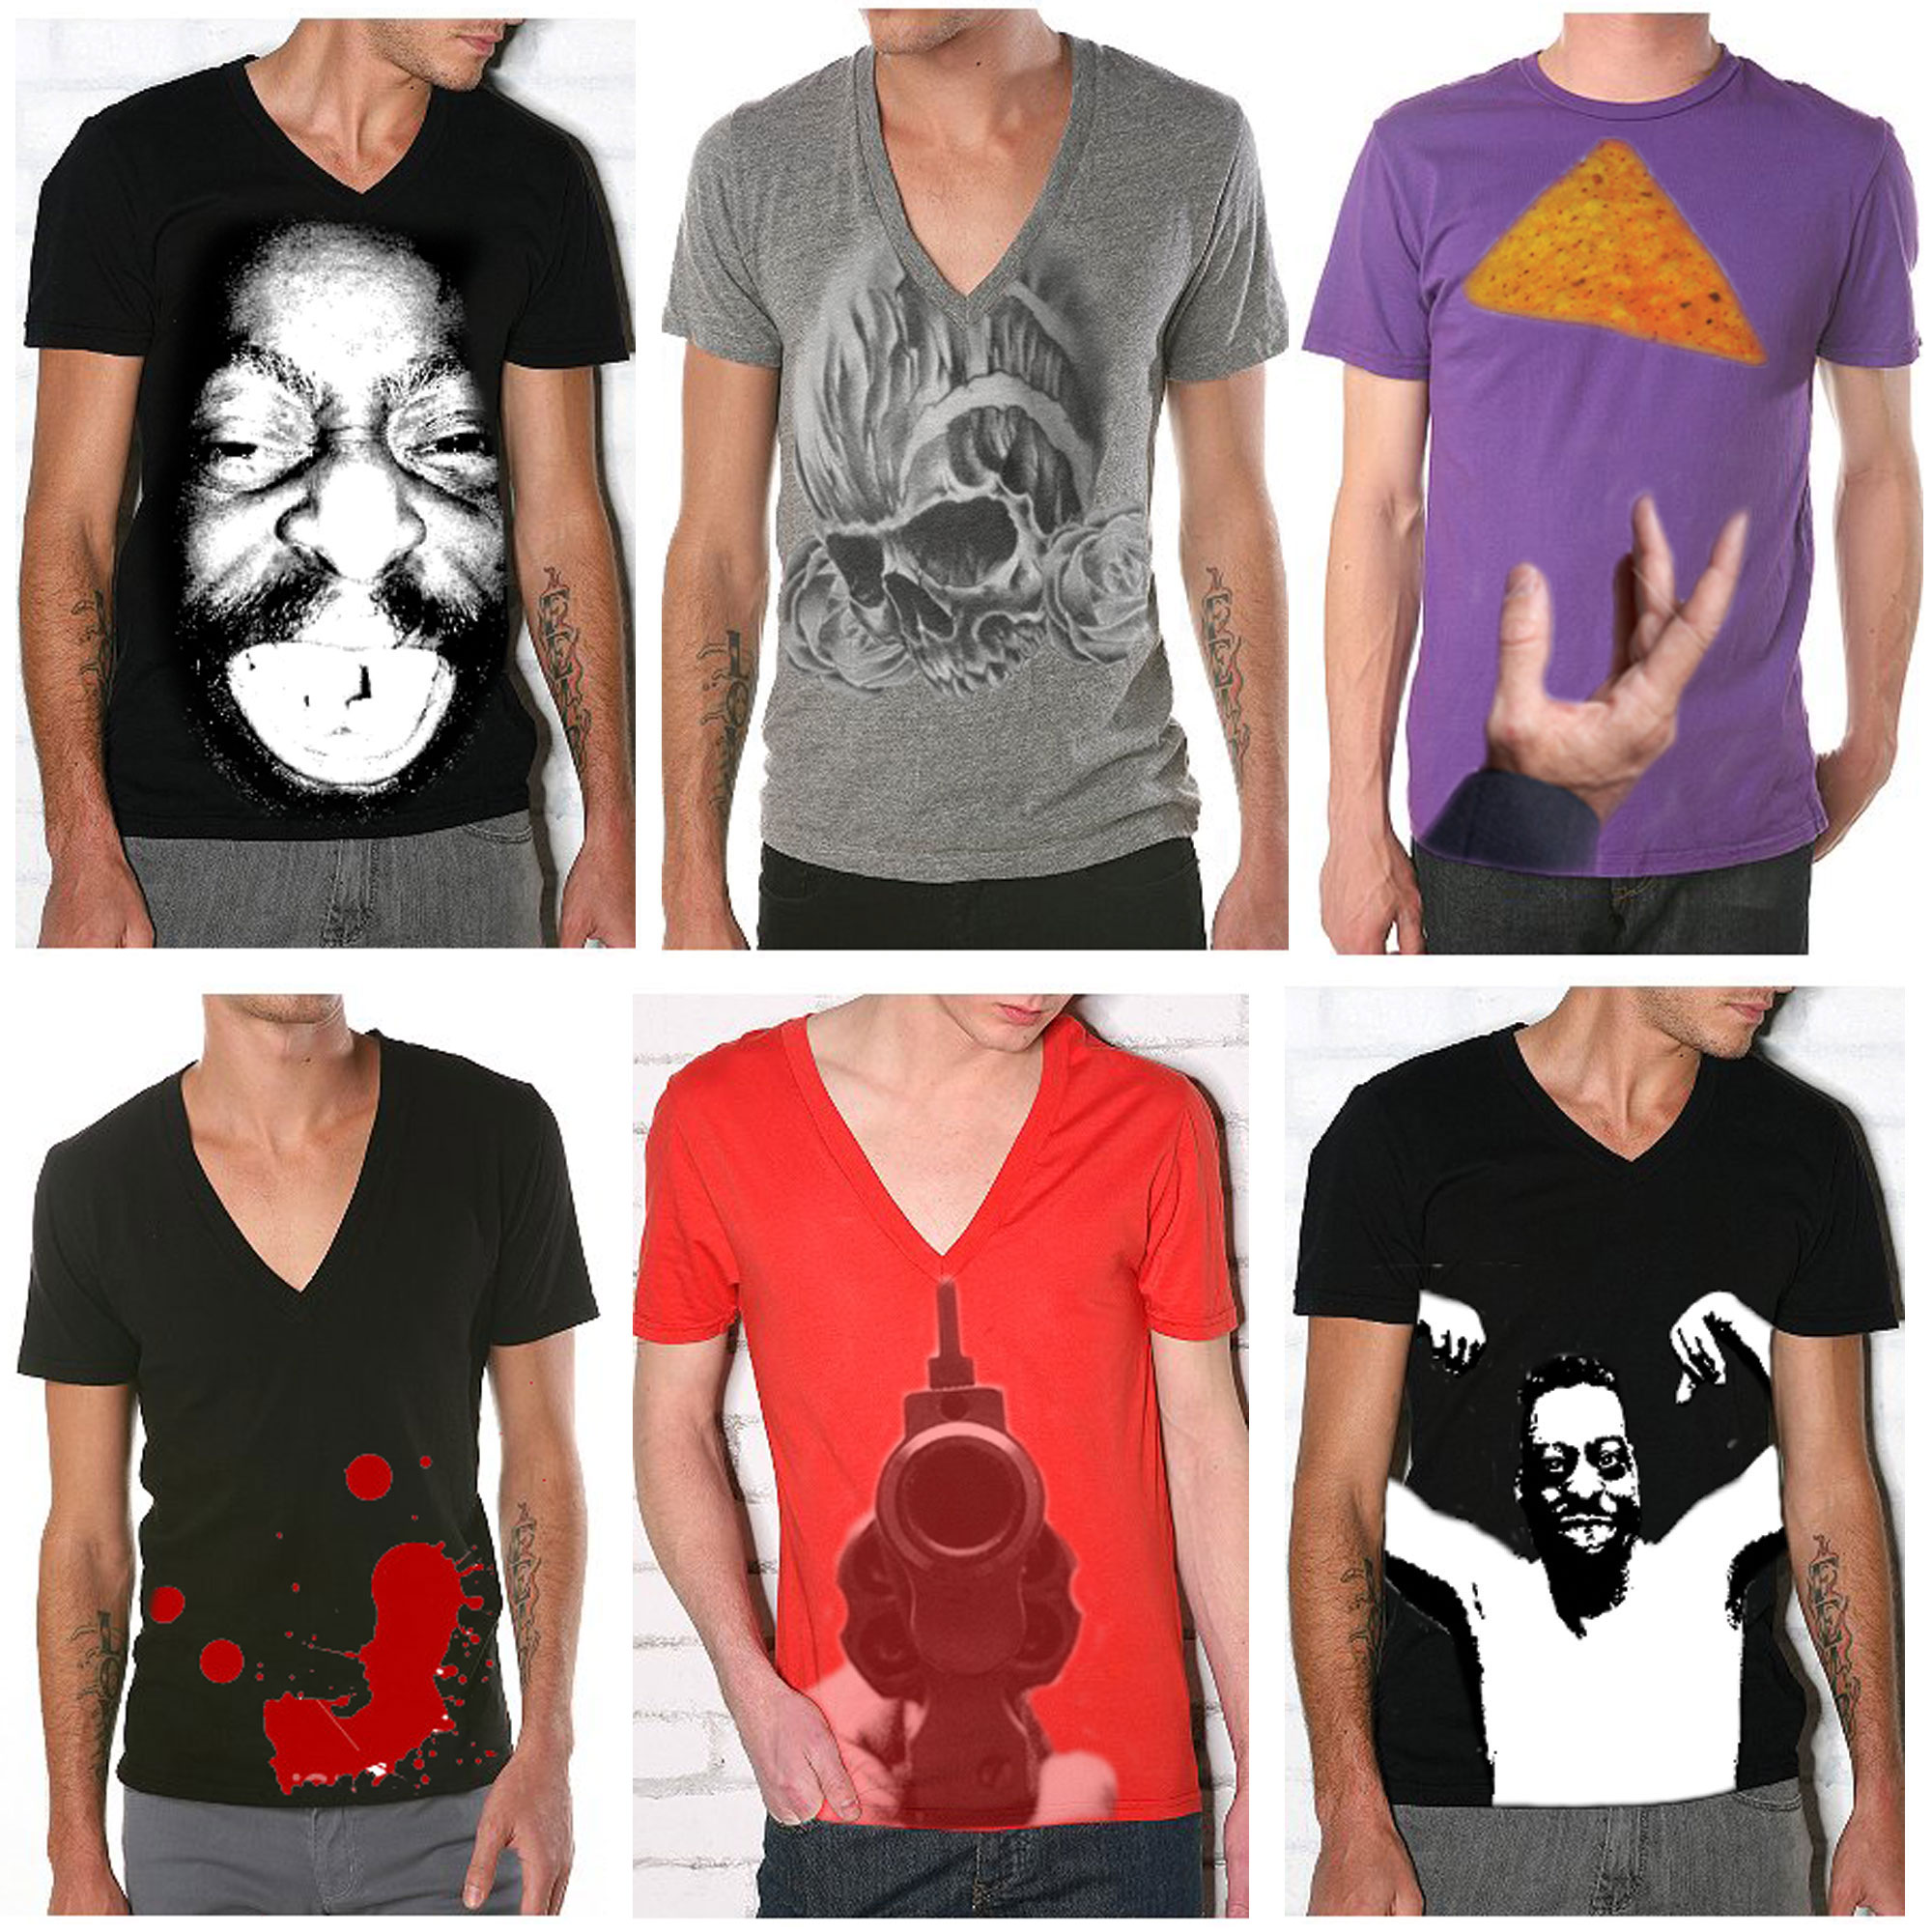 Design t shirt software online -  Online Software Develop Customized T Shirt Design By Making Use Of On Download